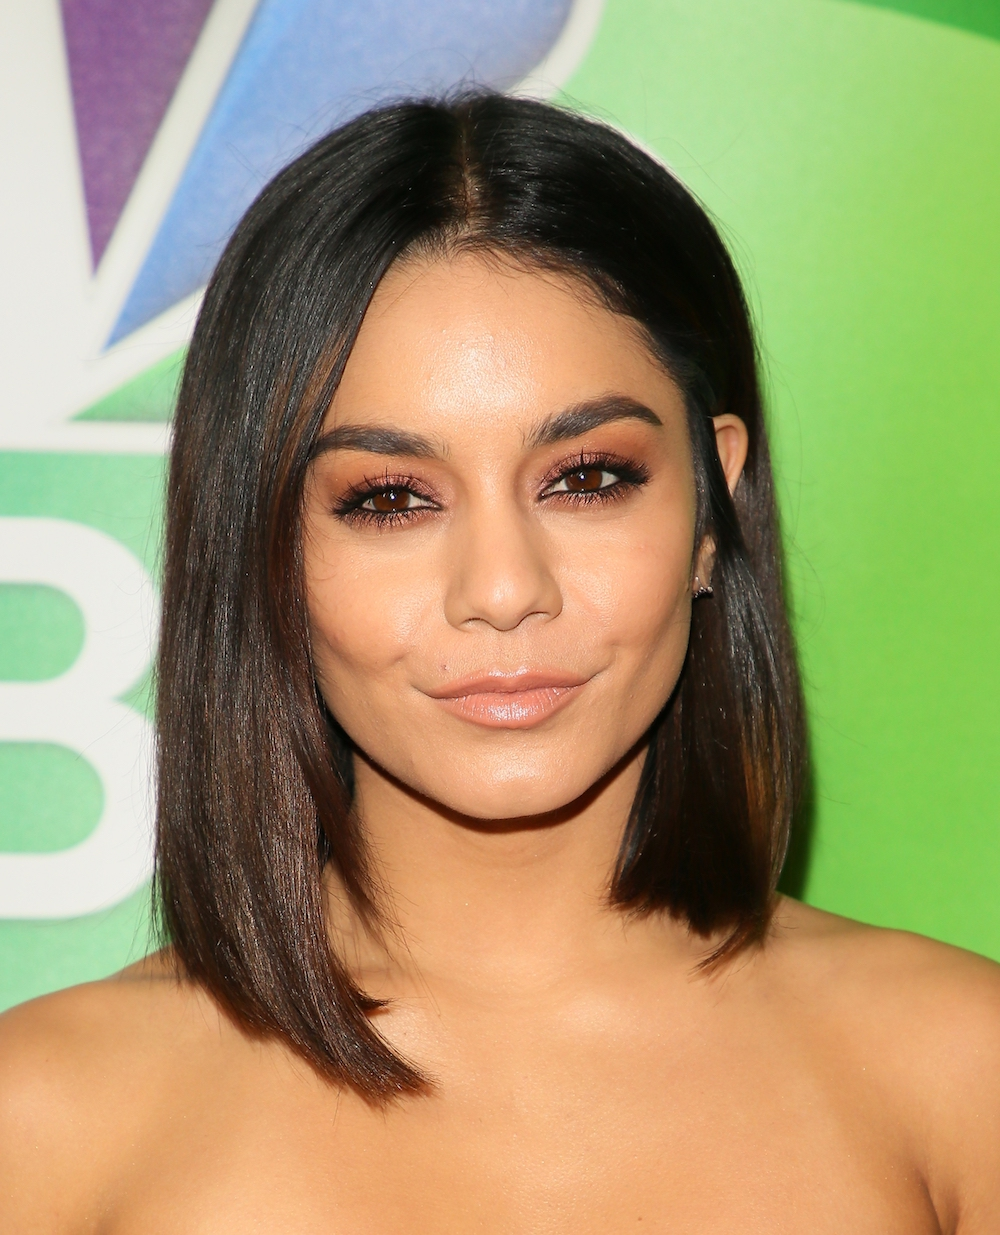 Vanessa Hudgens Is Giving Us Posh Spice Vibes With Her Sleek Bob